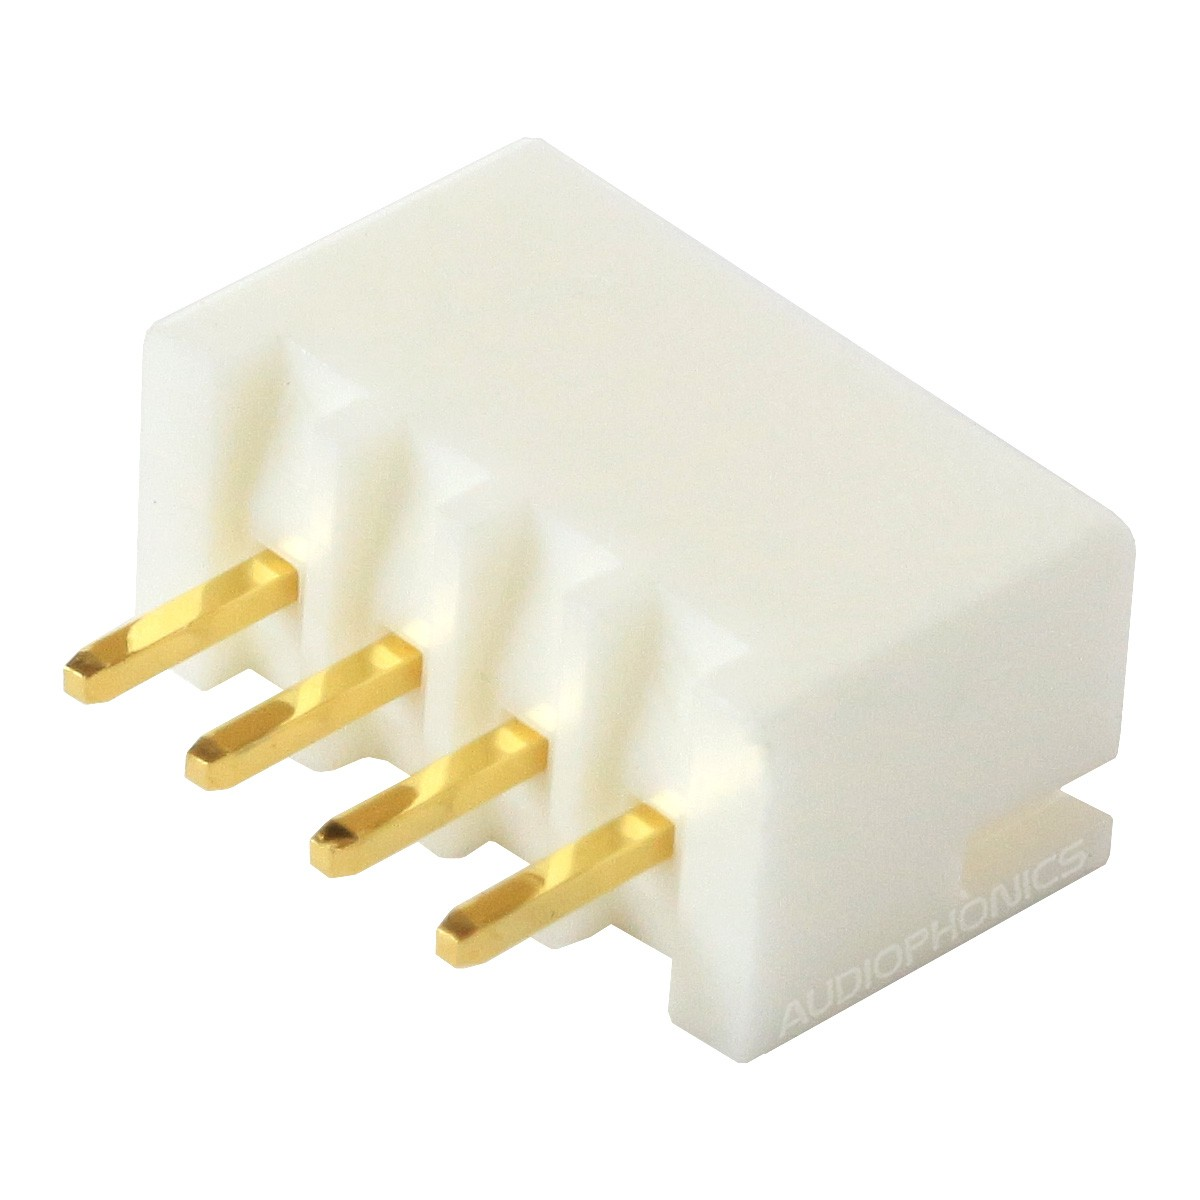 XH 2.54mm Male Socket 4 Channels Gold-Plated White (Unit)